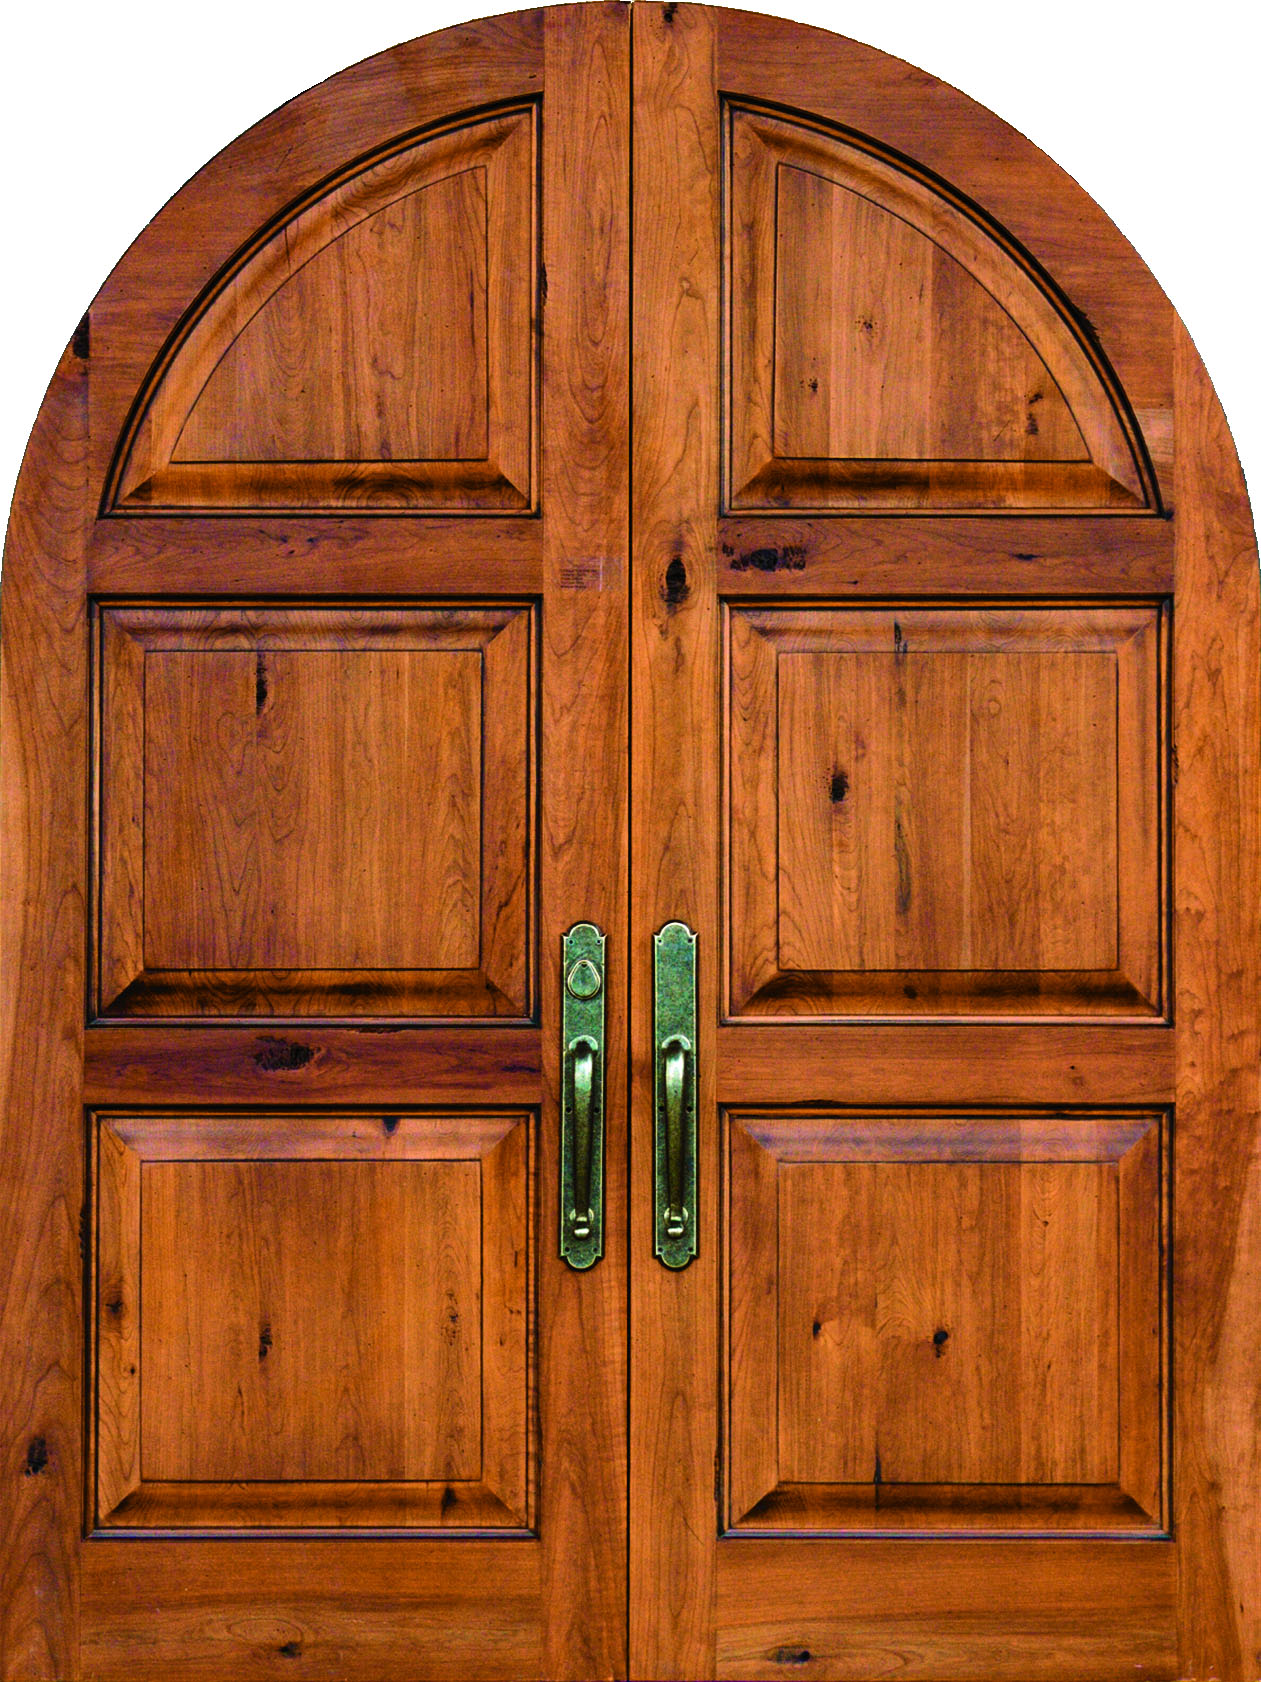 1682 #B05215 Arch Top Doors And Arched Door Frames Sun Mountain Door save image Arch Doors Exterior 39771261